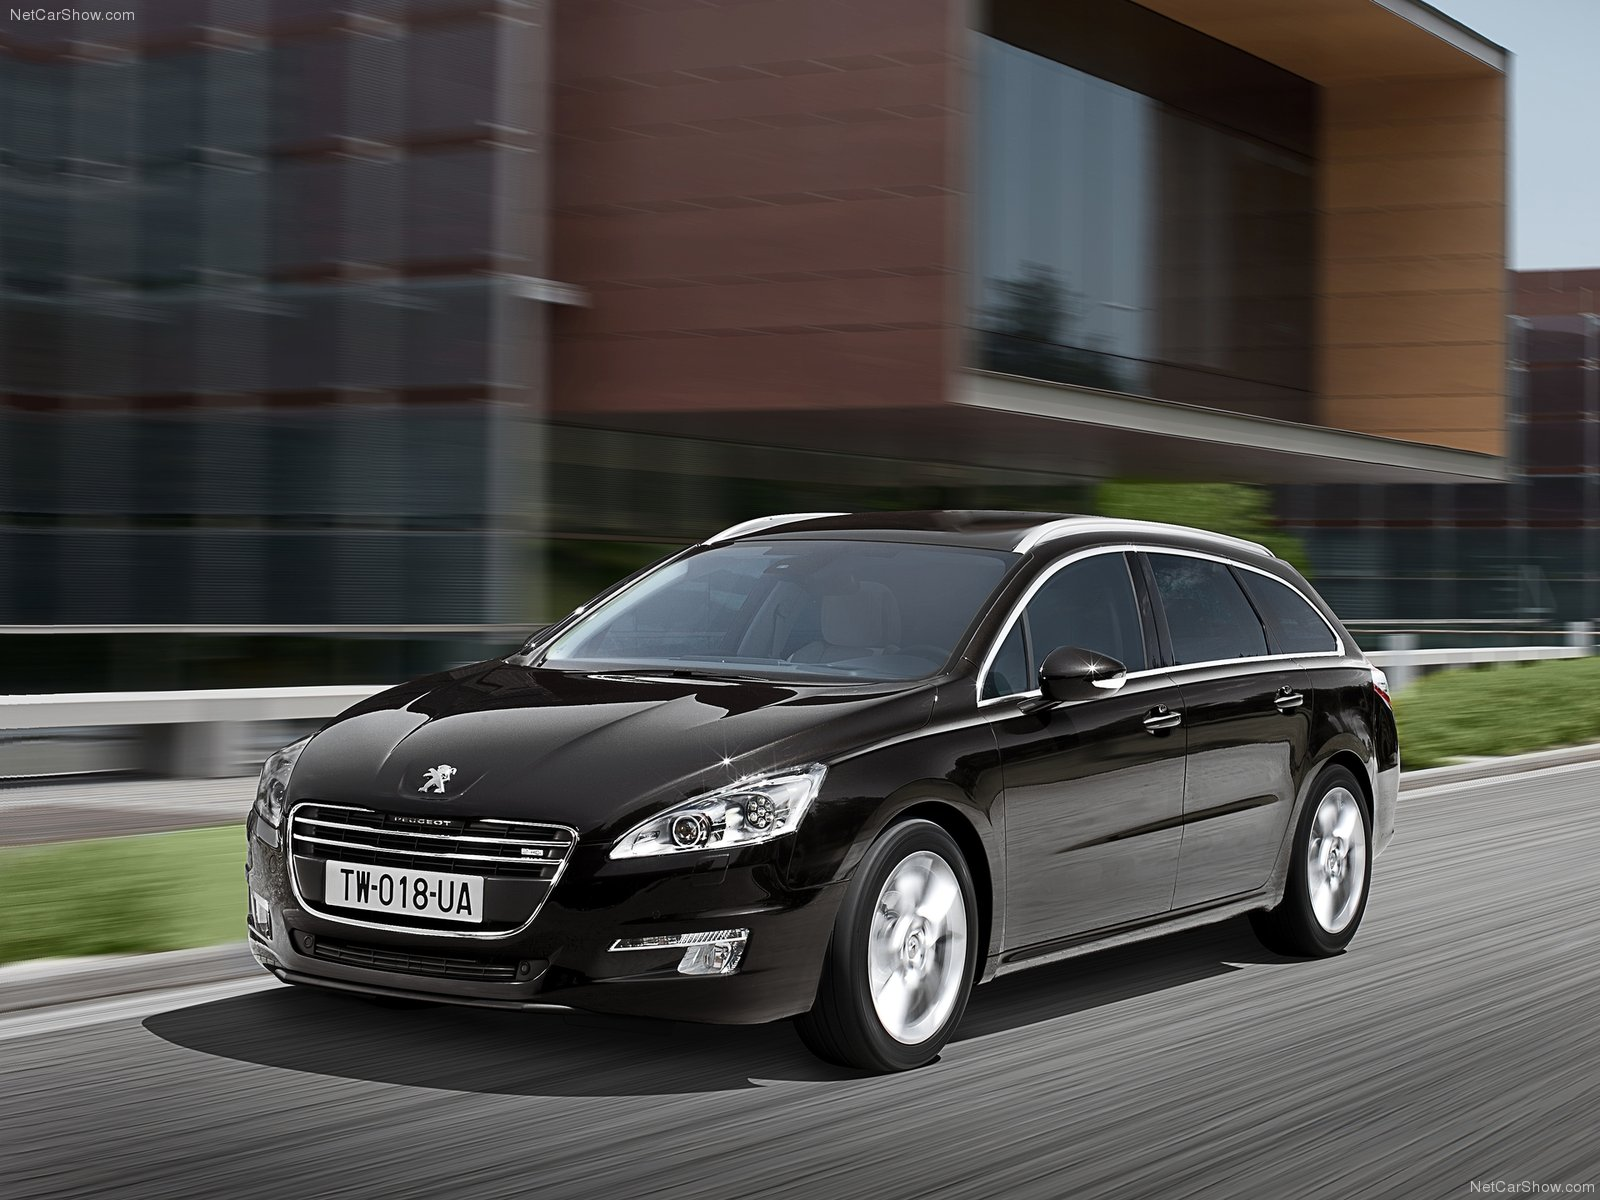 peugeot 508 sw photos photogallery with 37 pics. Black Bedroom Furniture Sets. Home Design Ideas